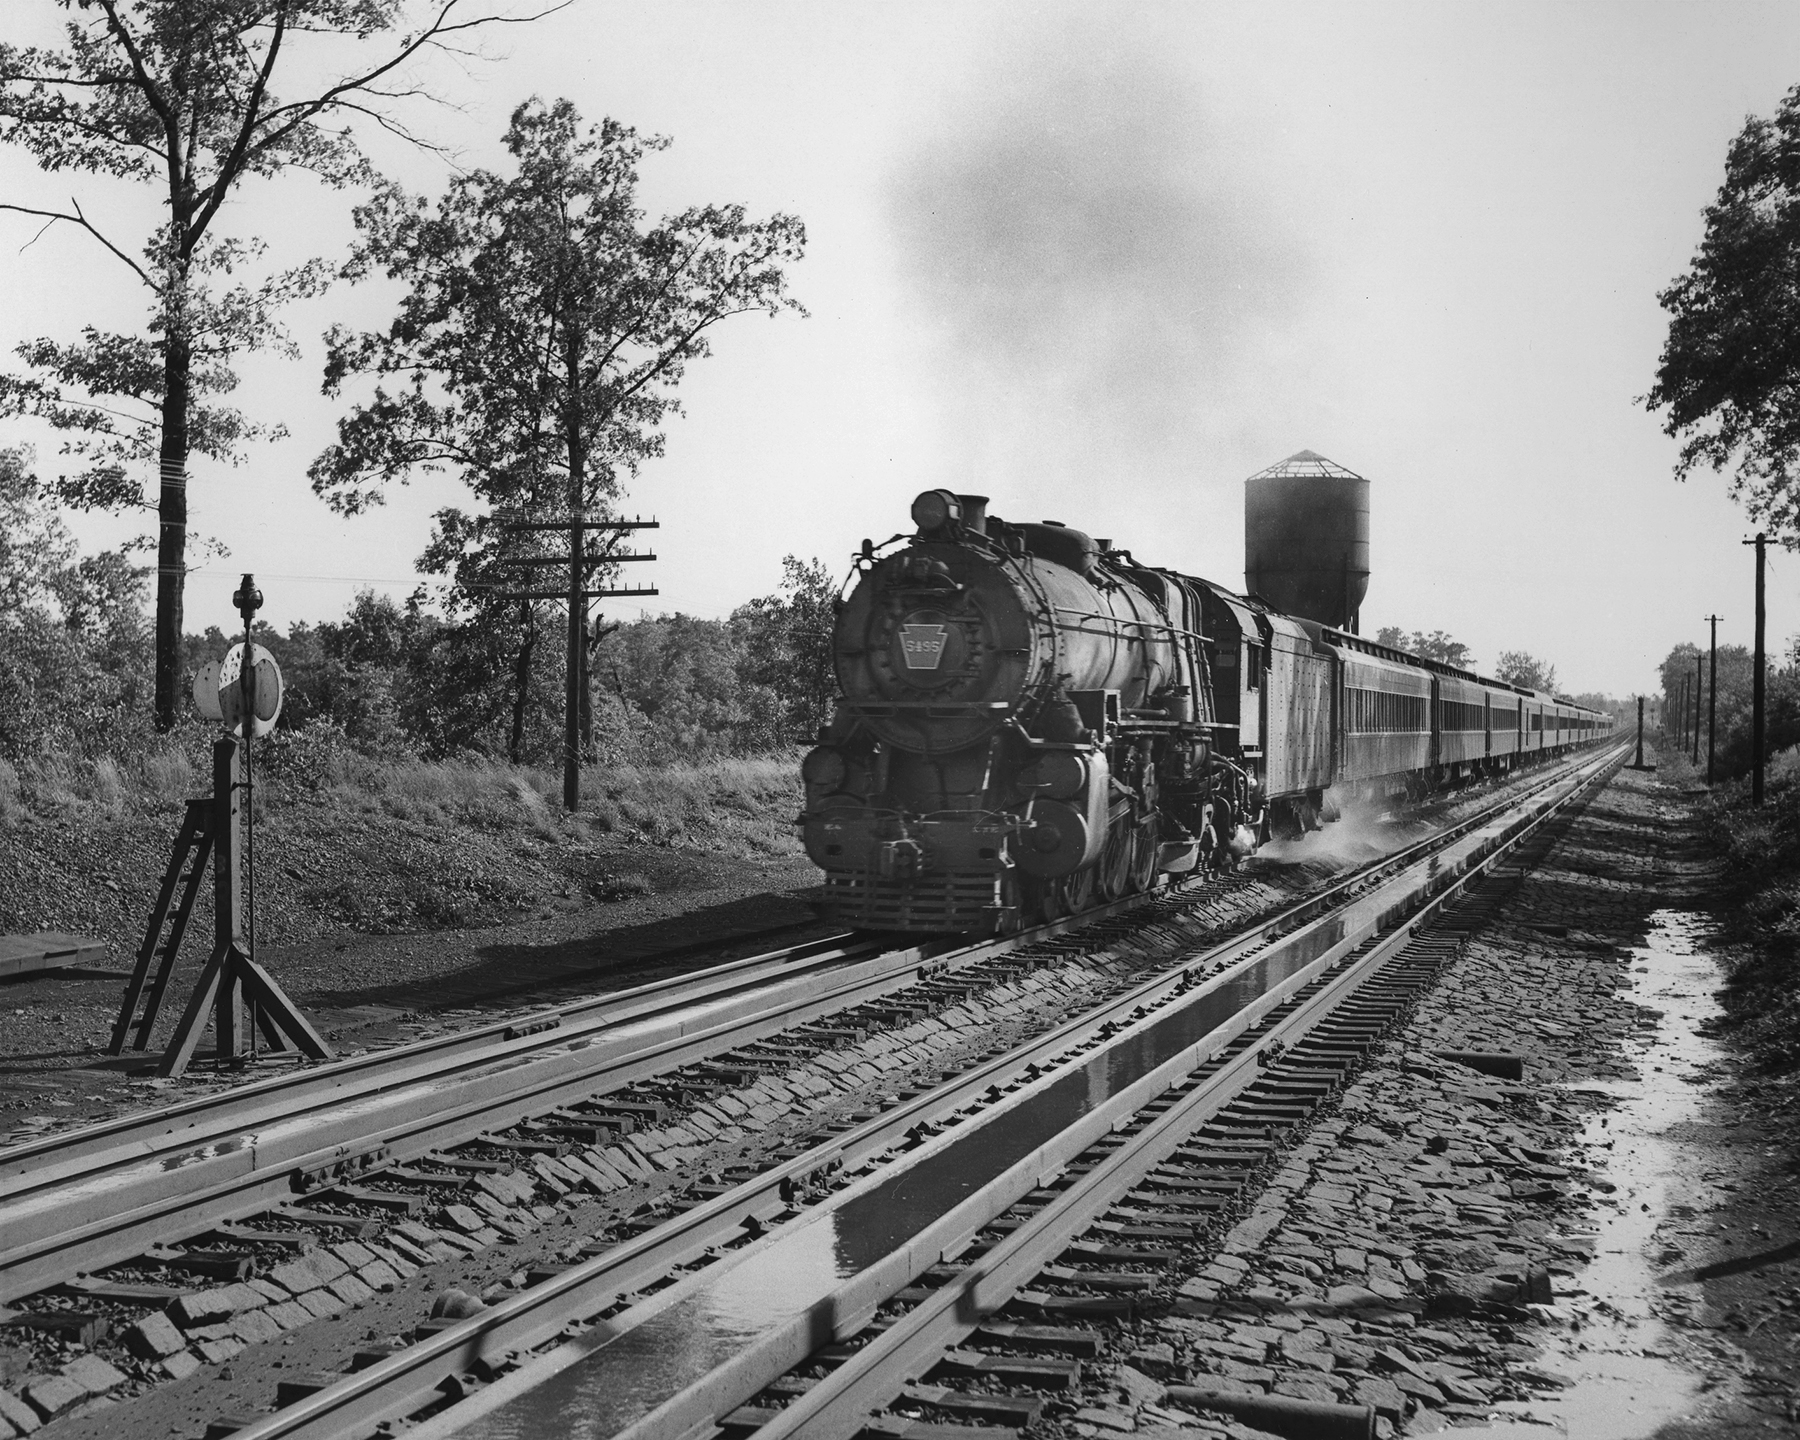 Pennsylvania Railroad Class K4 Pacific 4595 takes on water from track tanks inside the gage of the rail at Ancora, New Jersey. The track tanks allowed steam engines to take on water at speed to avoid lengthly service stops and tying up the main line and were once a common practice in many places along parent road, Pennsylvania Railroad. The ubiquitous PRR Class K4 was one of many locomotives the parent company provided to the PRSL for service.Photography by Robert L. Long, Collection of William Gindhart